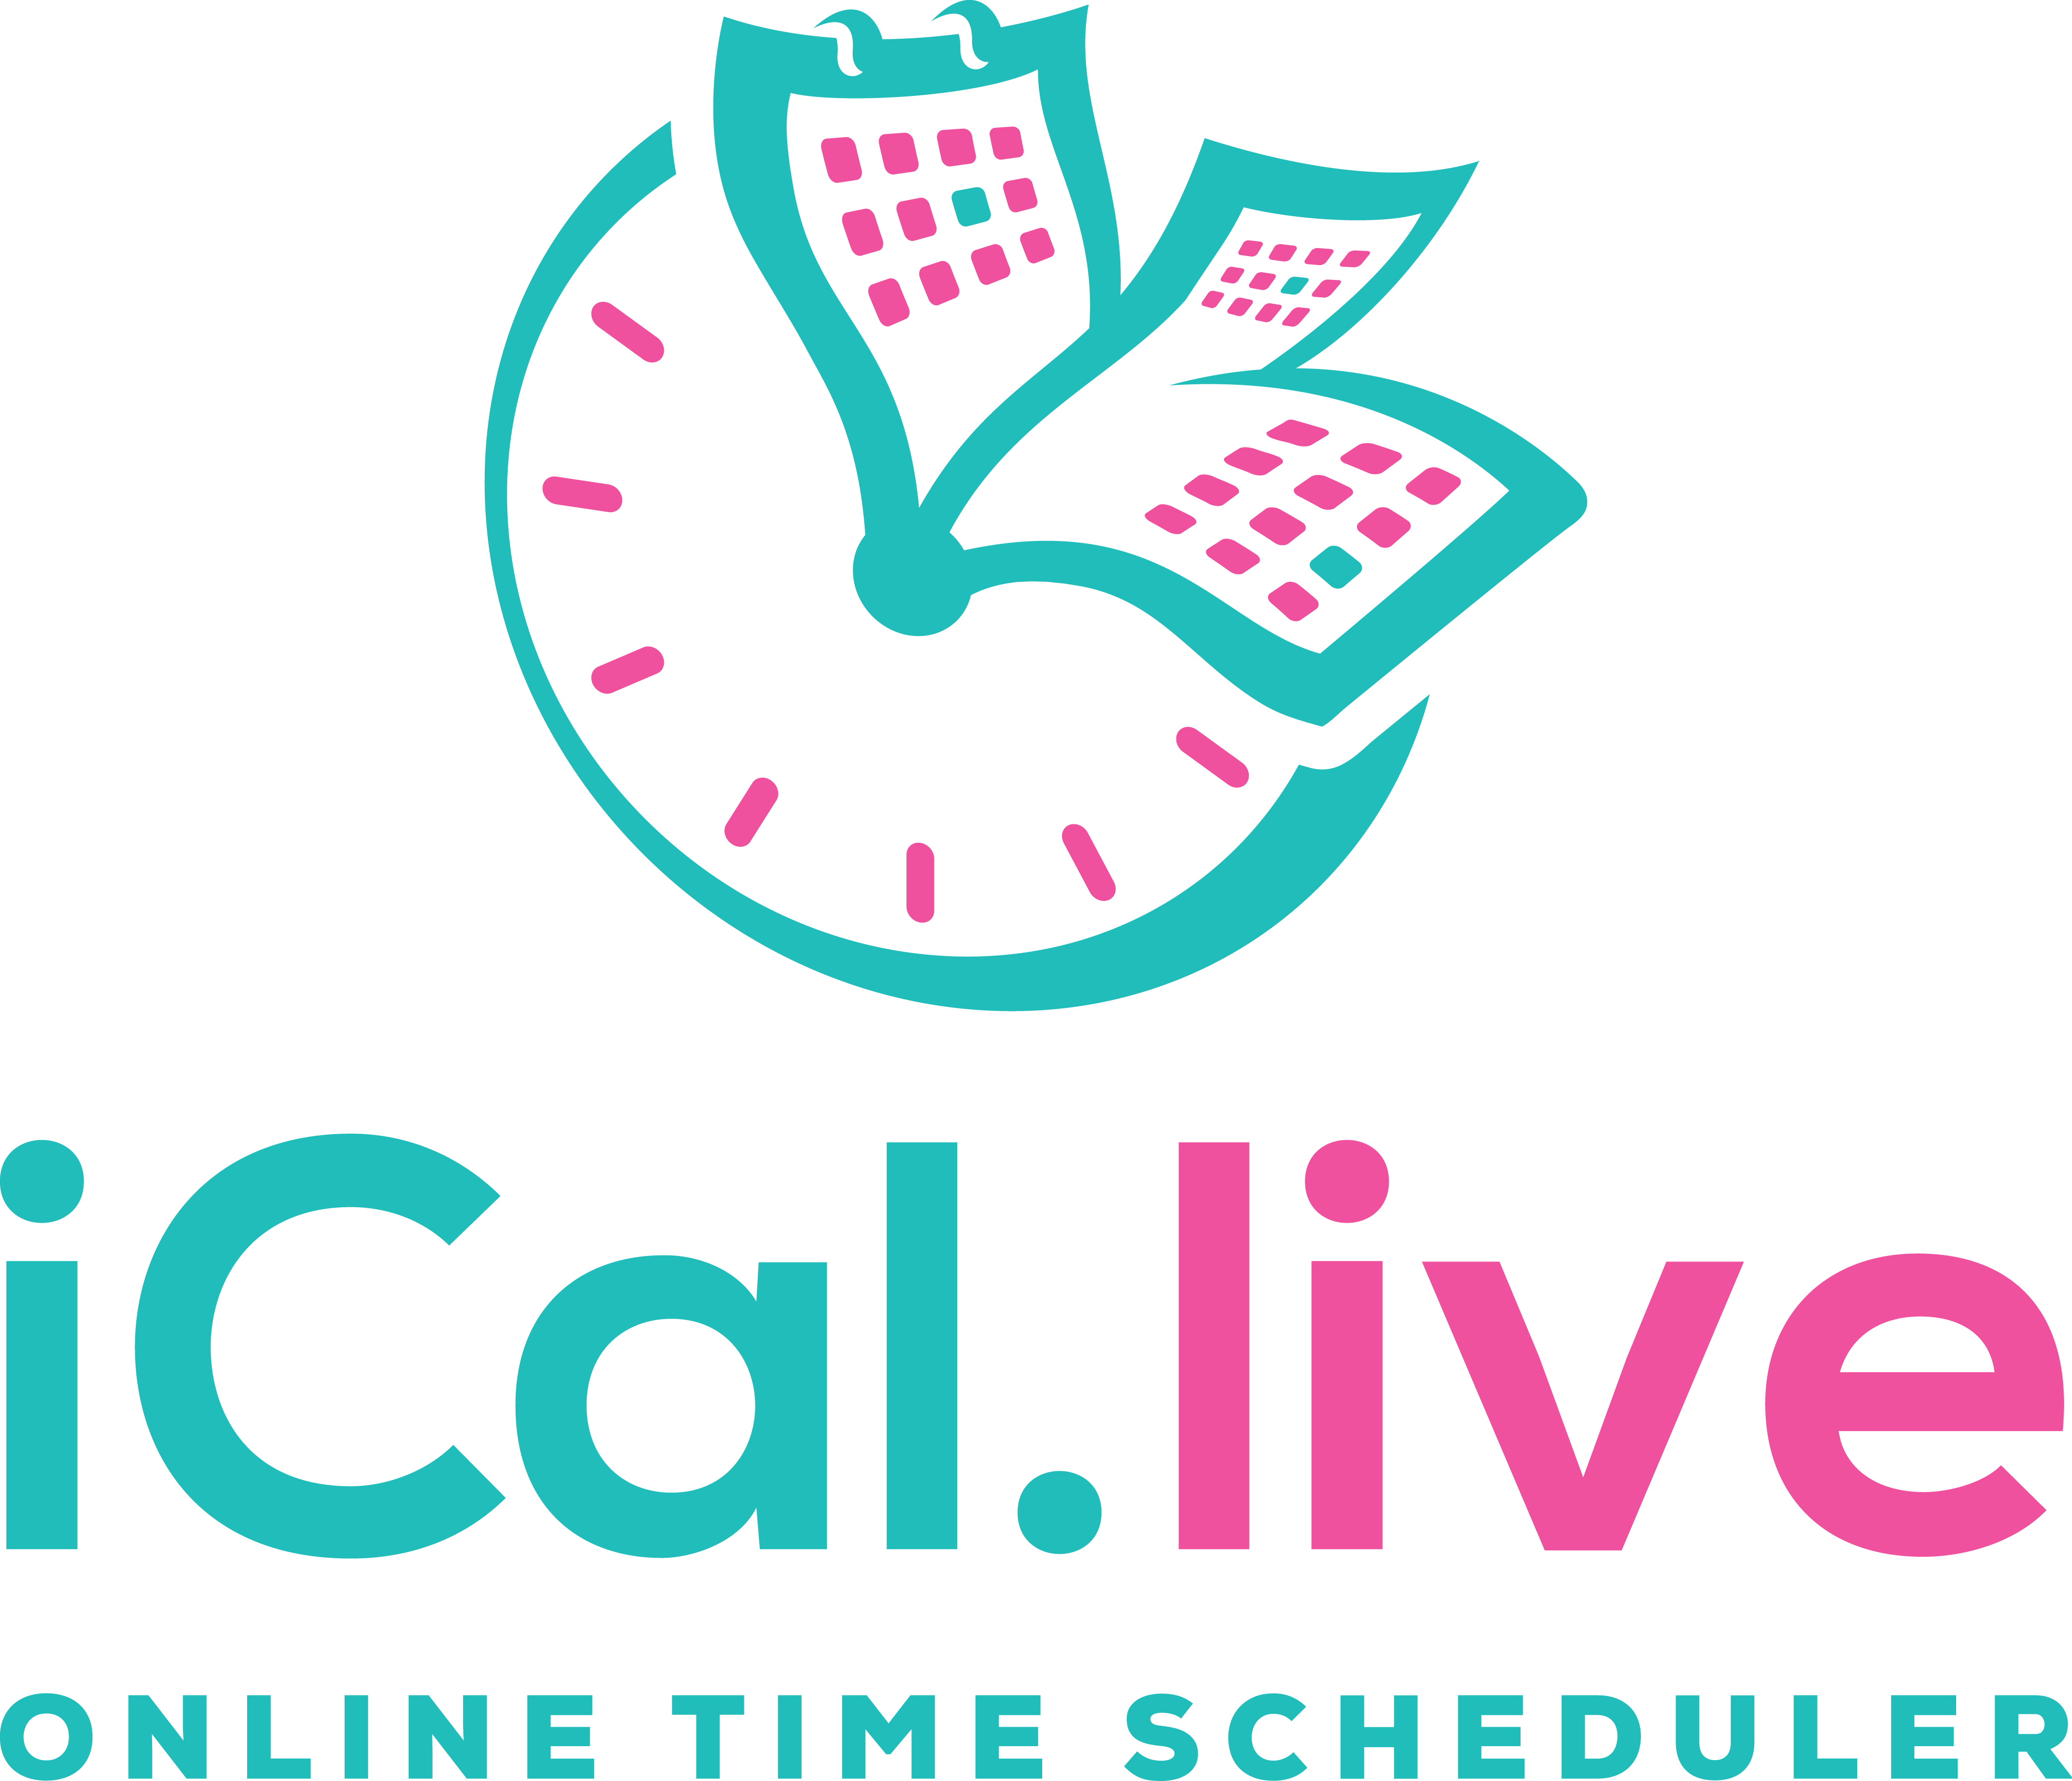 online time schedule app need a impressive logo